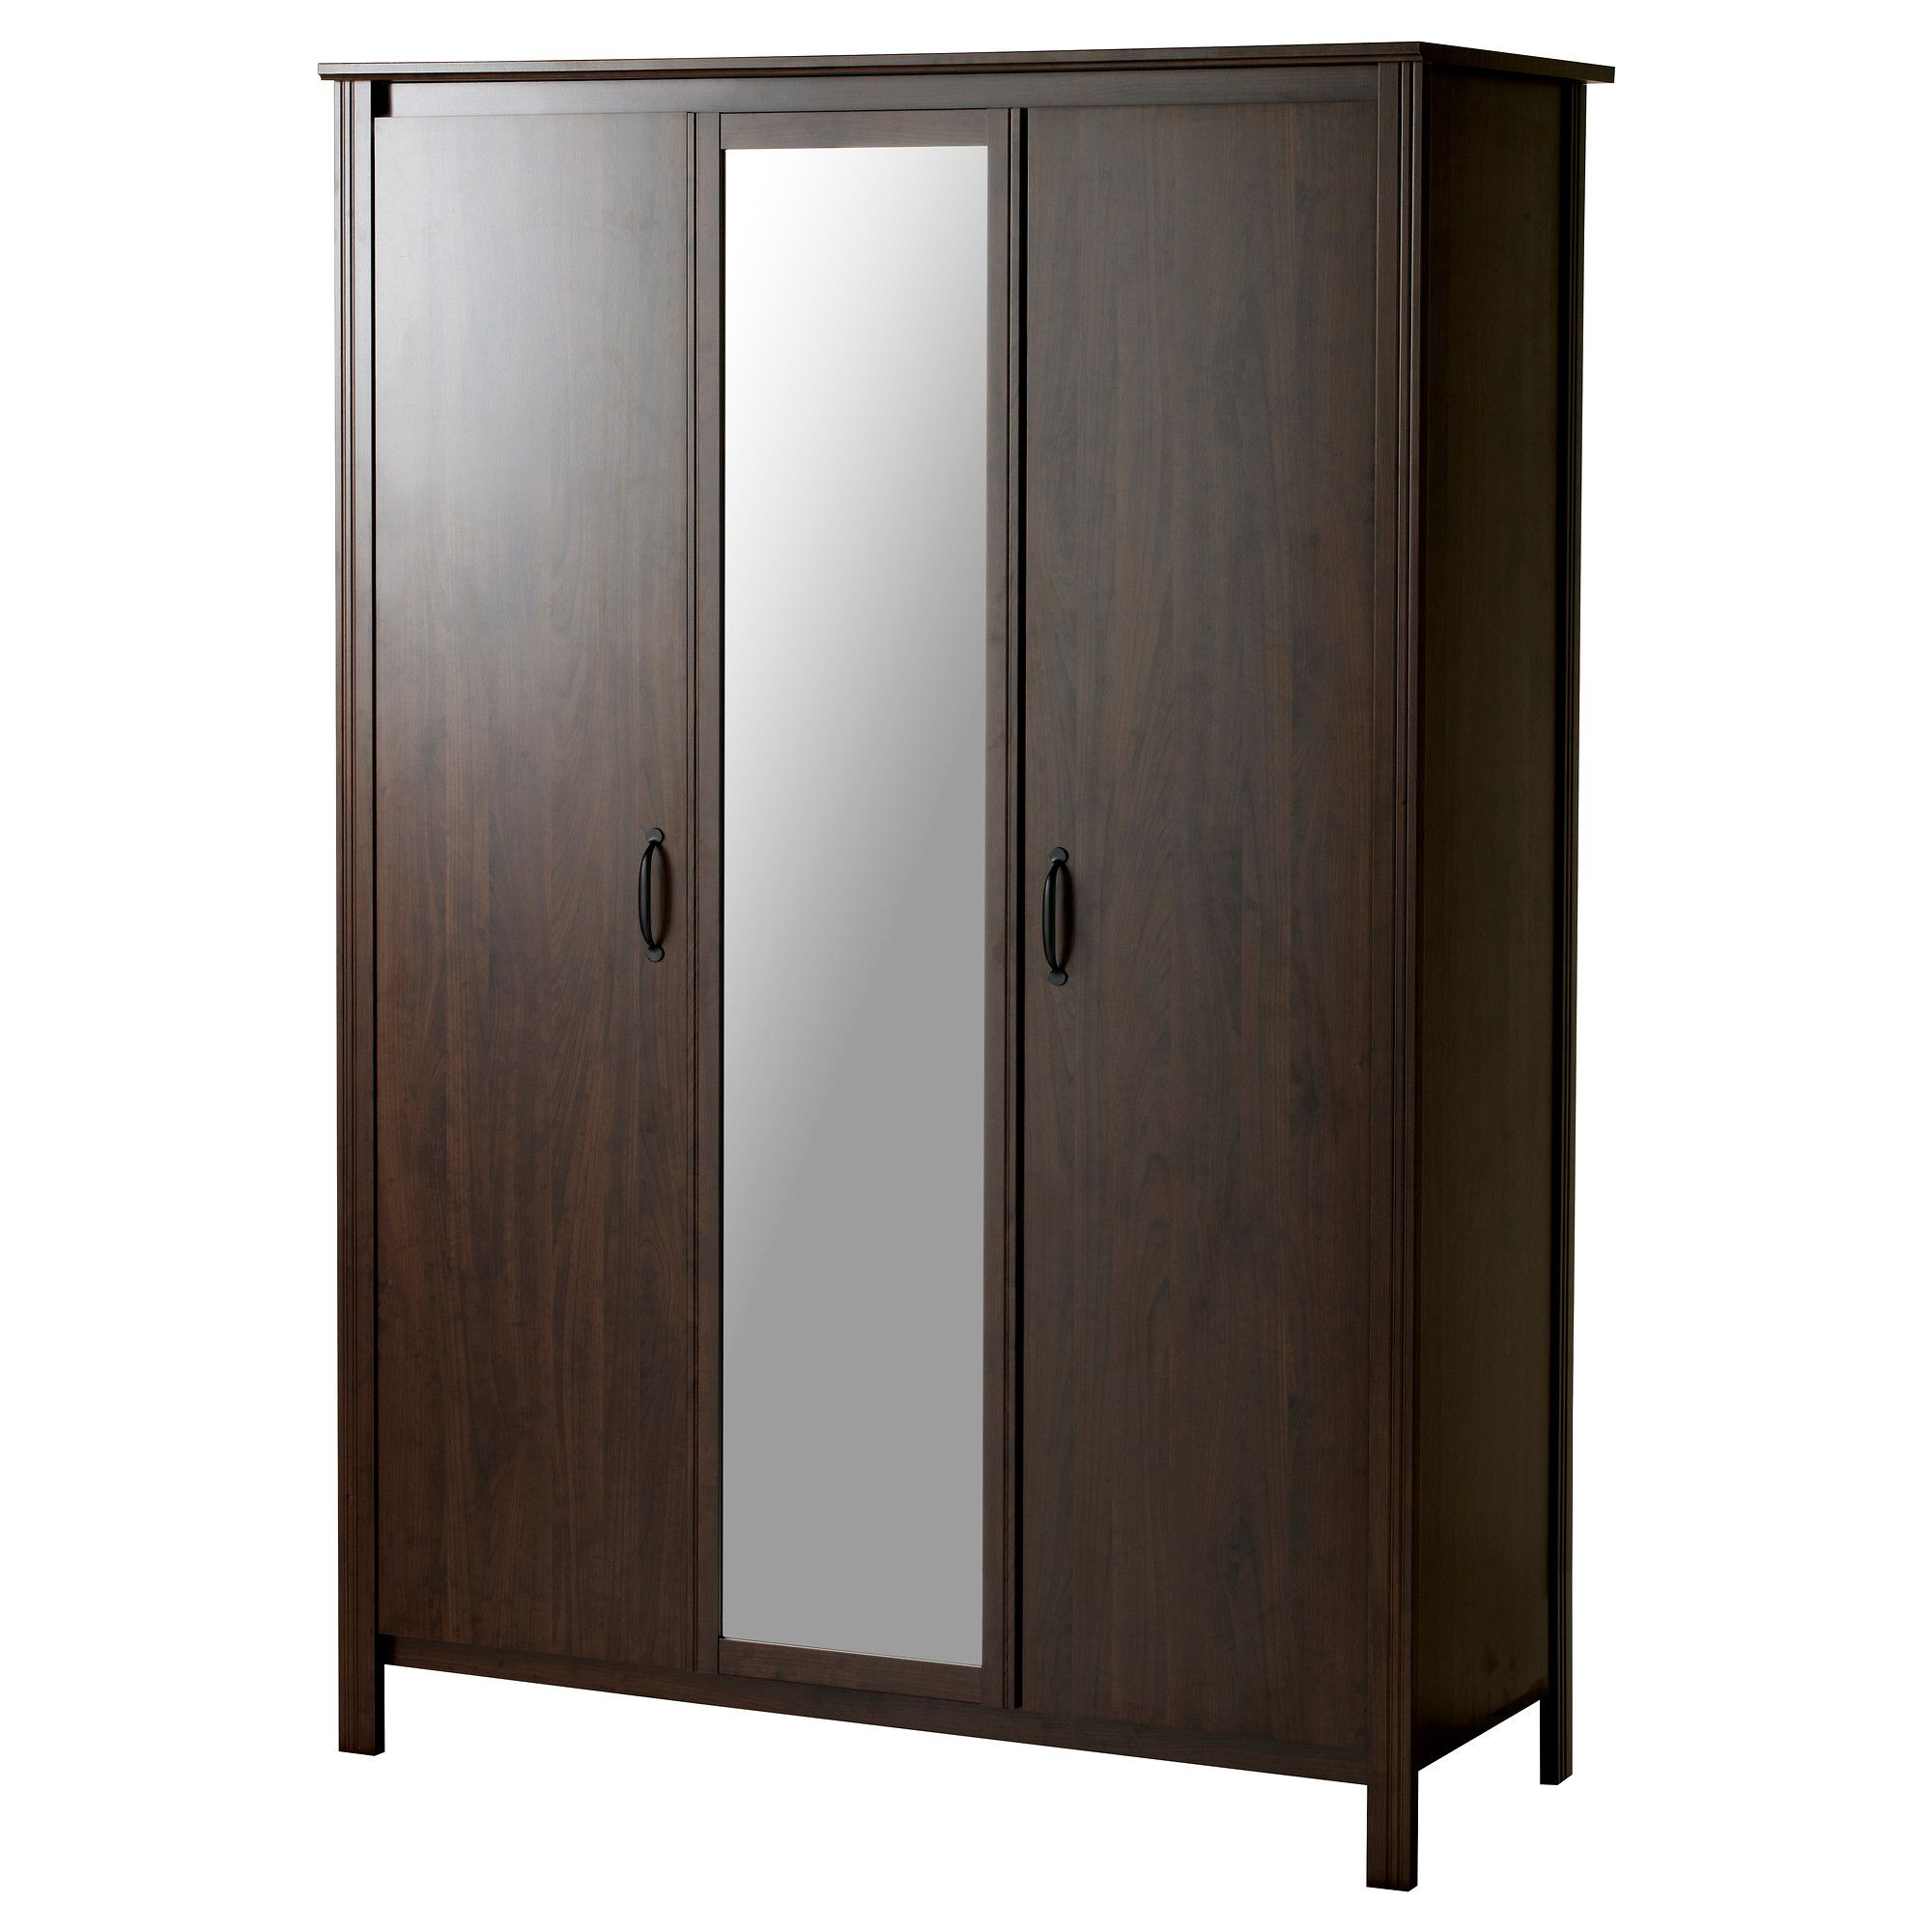 Awesome BRUSALI Wardrobe with doors IKEA for the practice room should hold all of